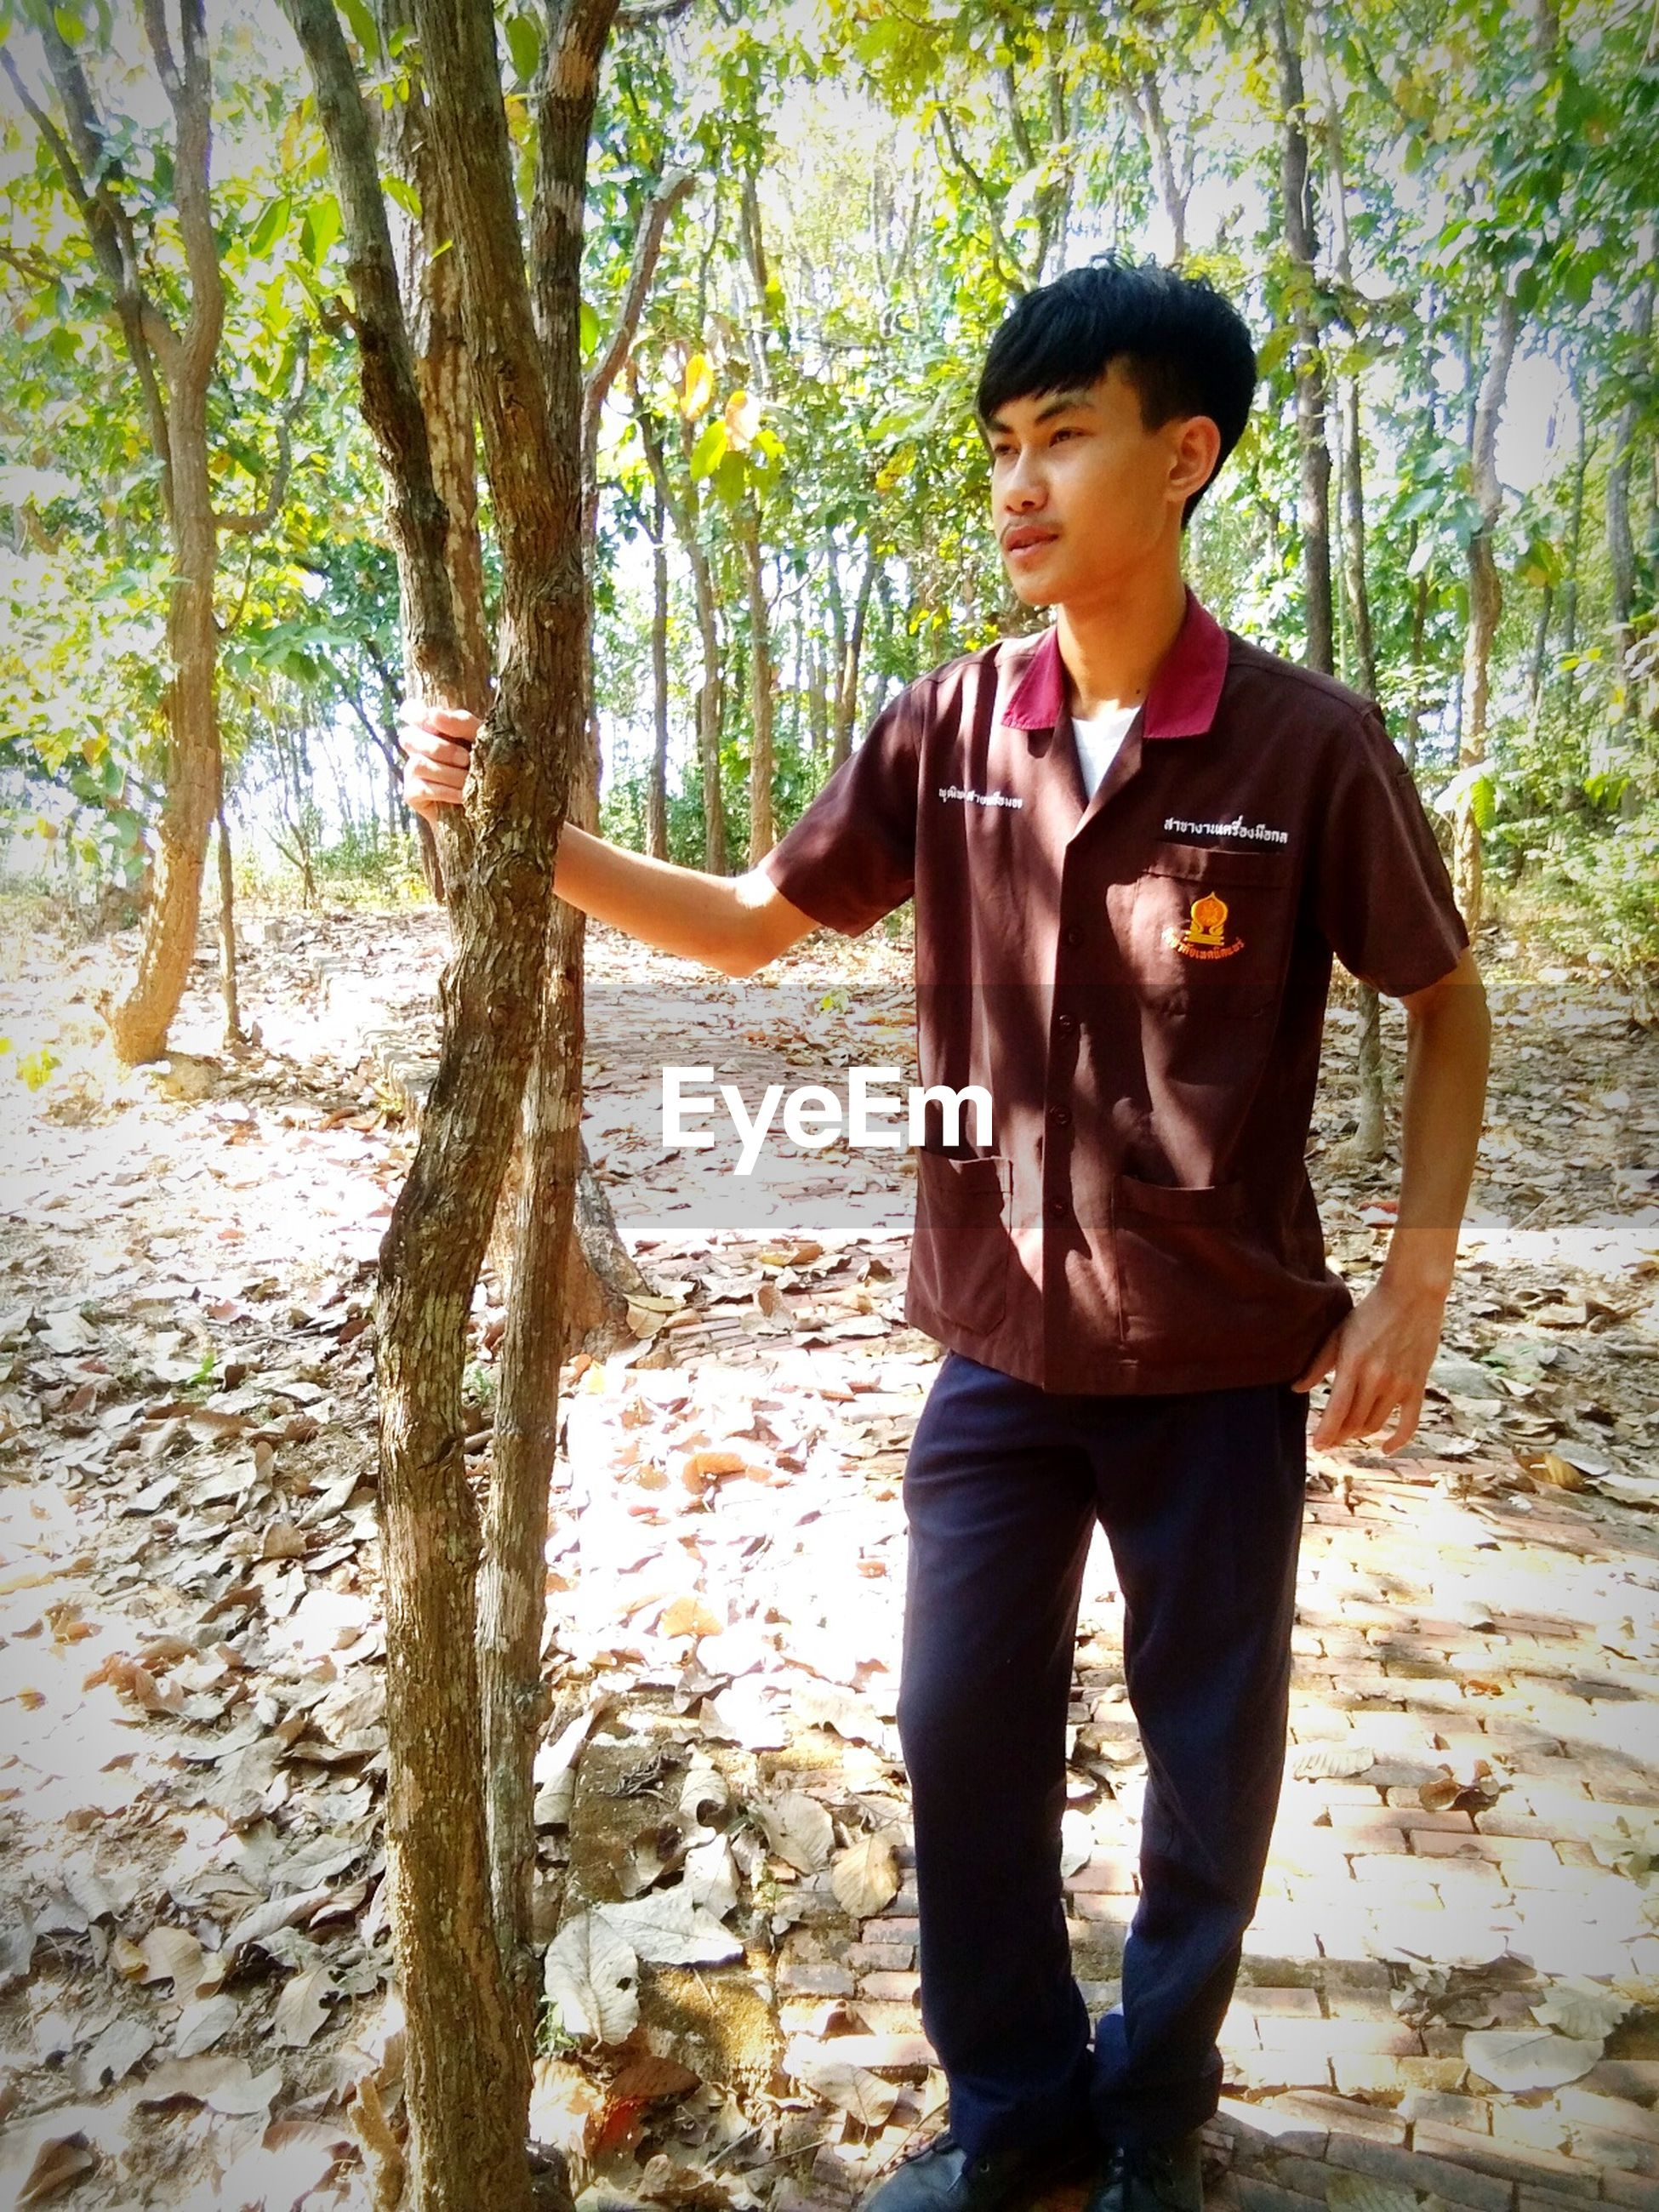 tree, real people, one person, standing, front view, day, forest, full length, outdoors, tree trunk, sunlight, nature, lifestyles, young adult, people